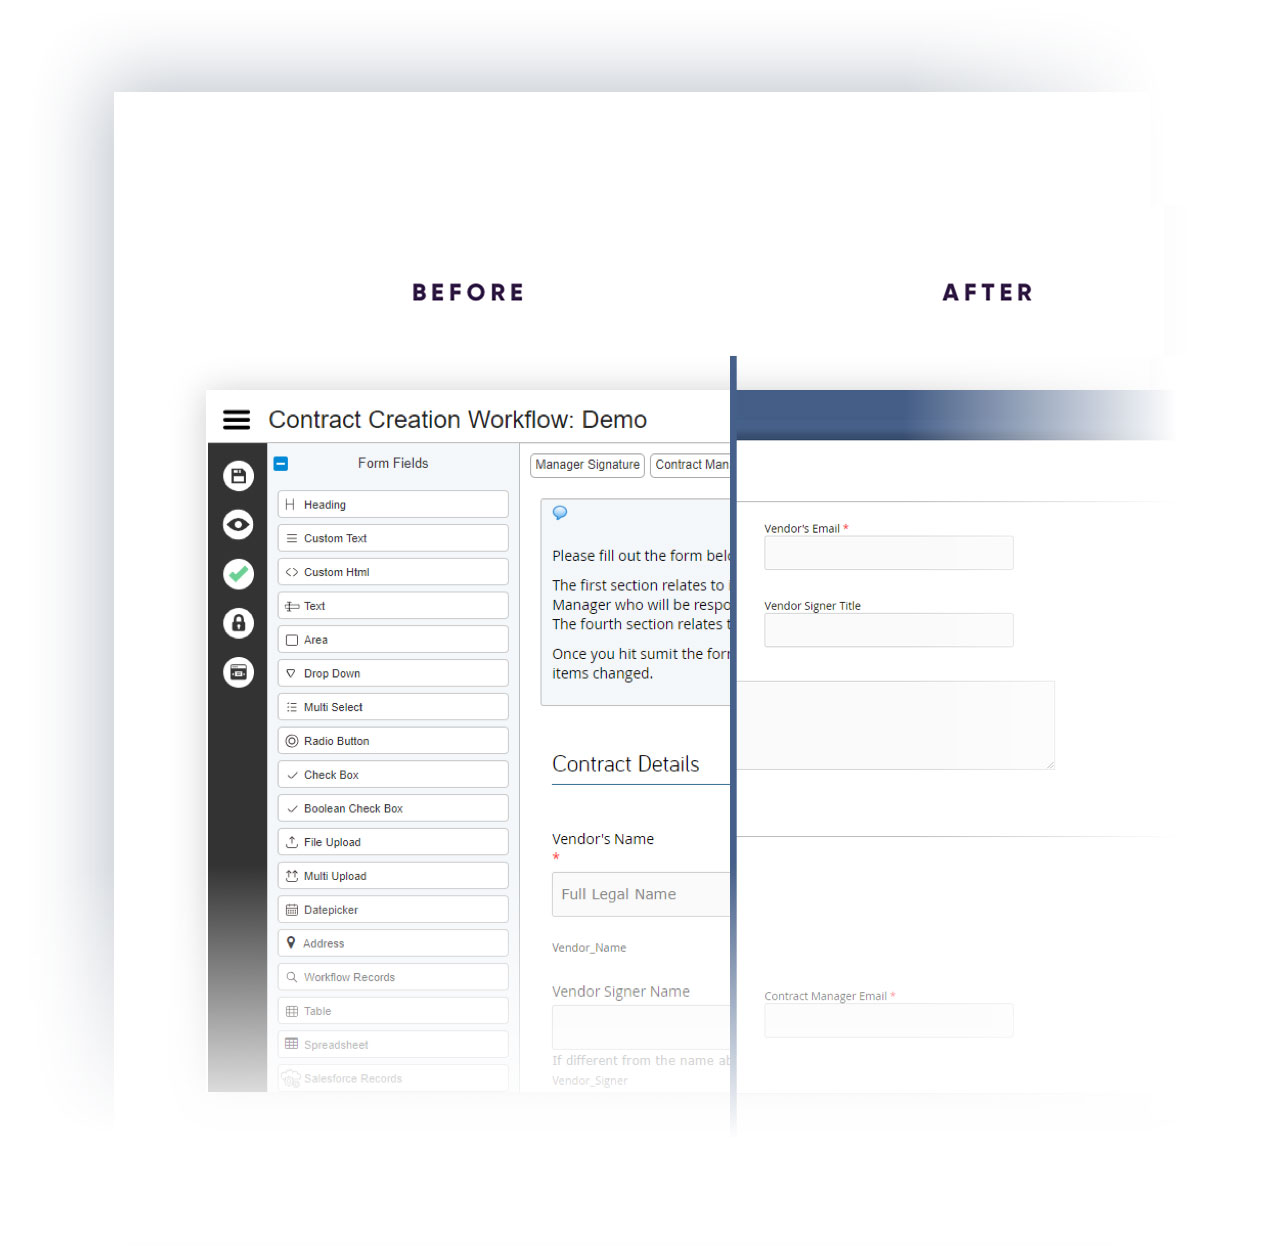 Government Automation Platform for Forms and Processes